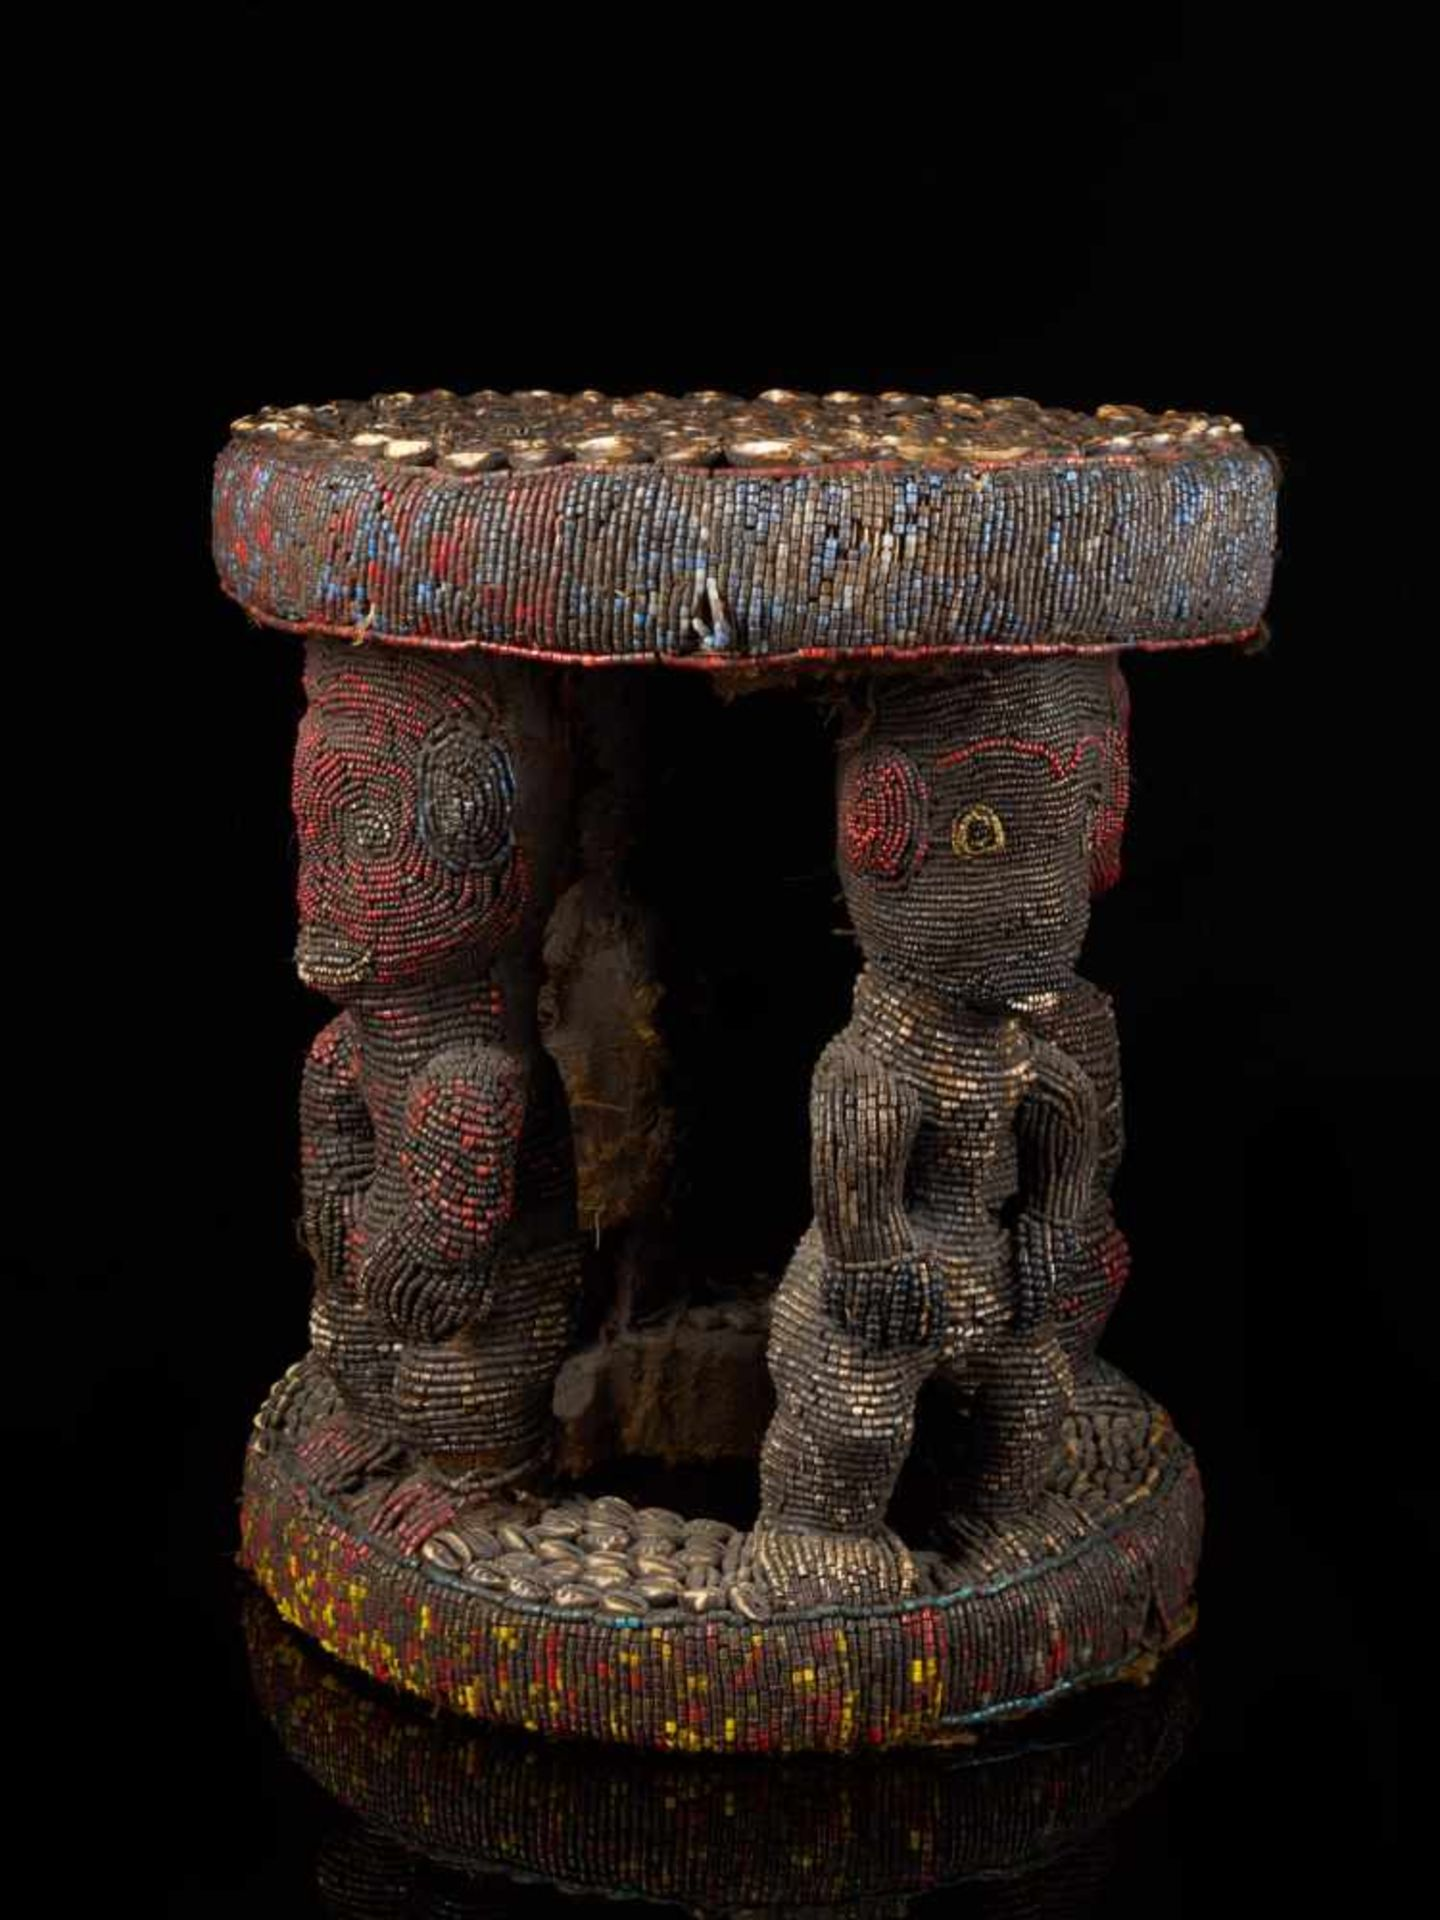 Beaded Royal Stool Supported By Four Figures - Tribal ArtThis stunning stool has a round base and - Bild 5 aus 7